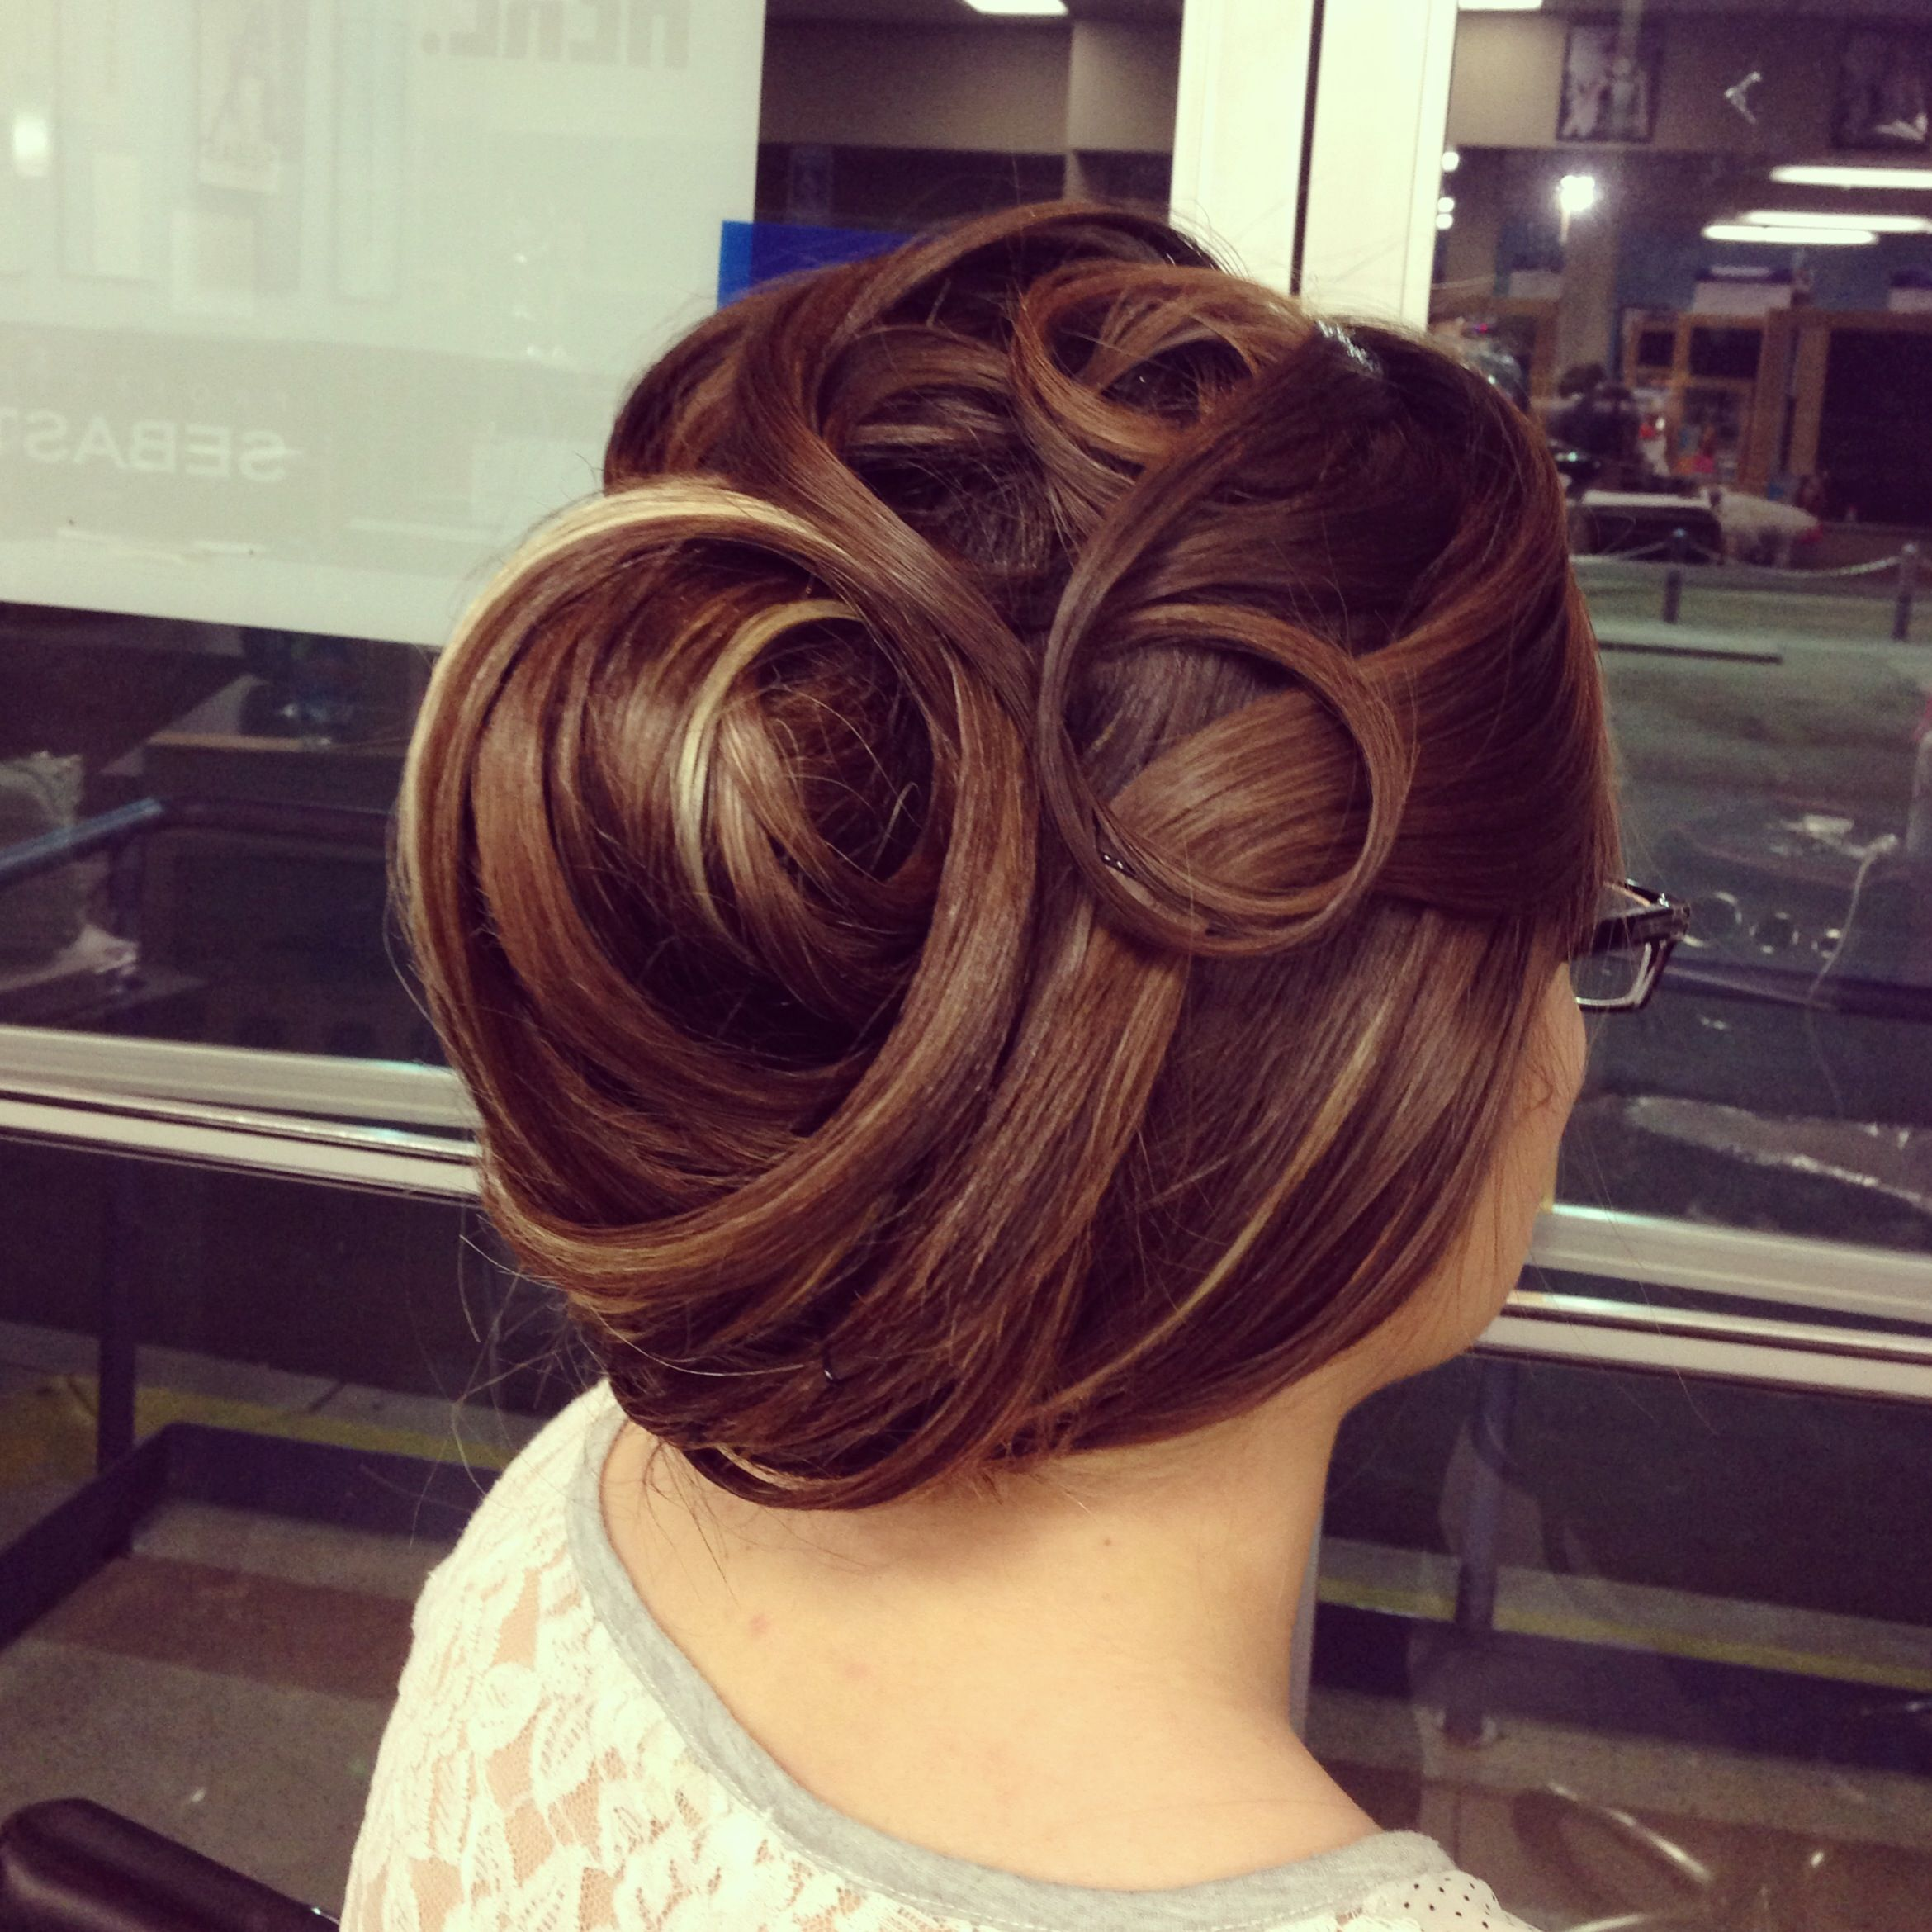 Practicing Updos For The Shanghai Competition